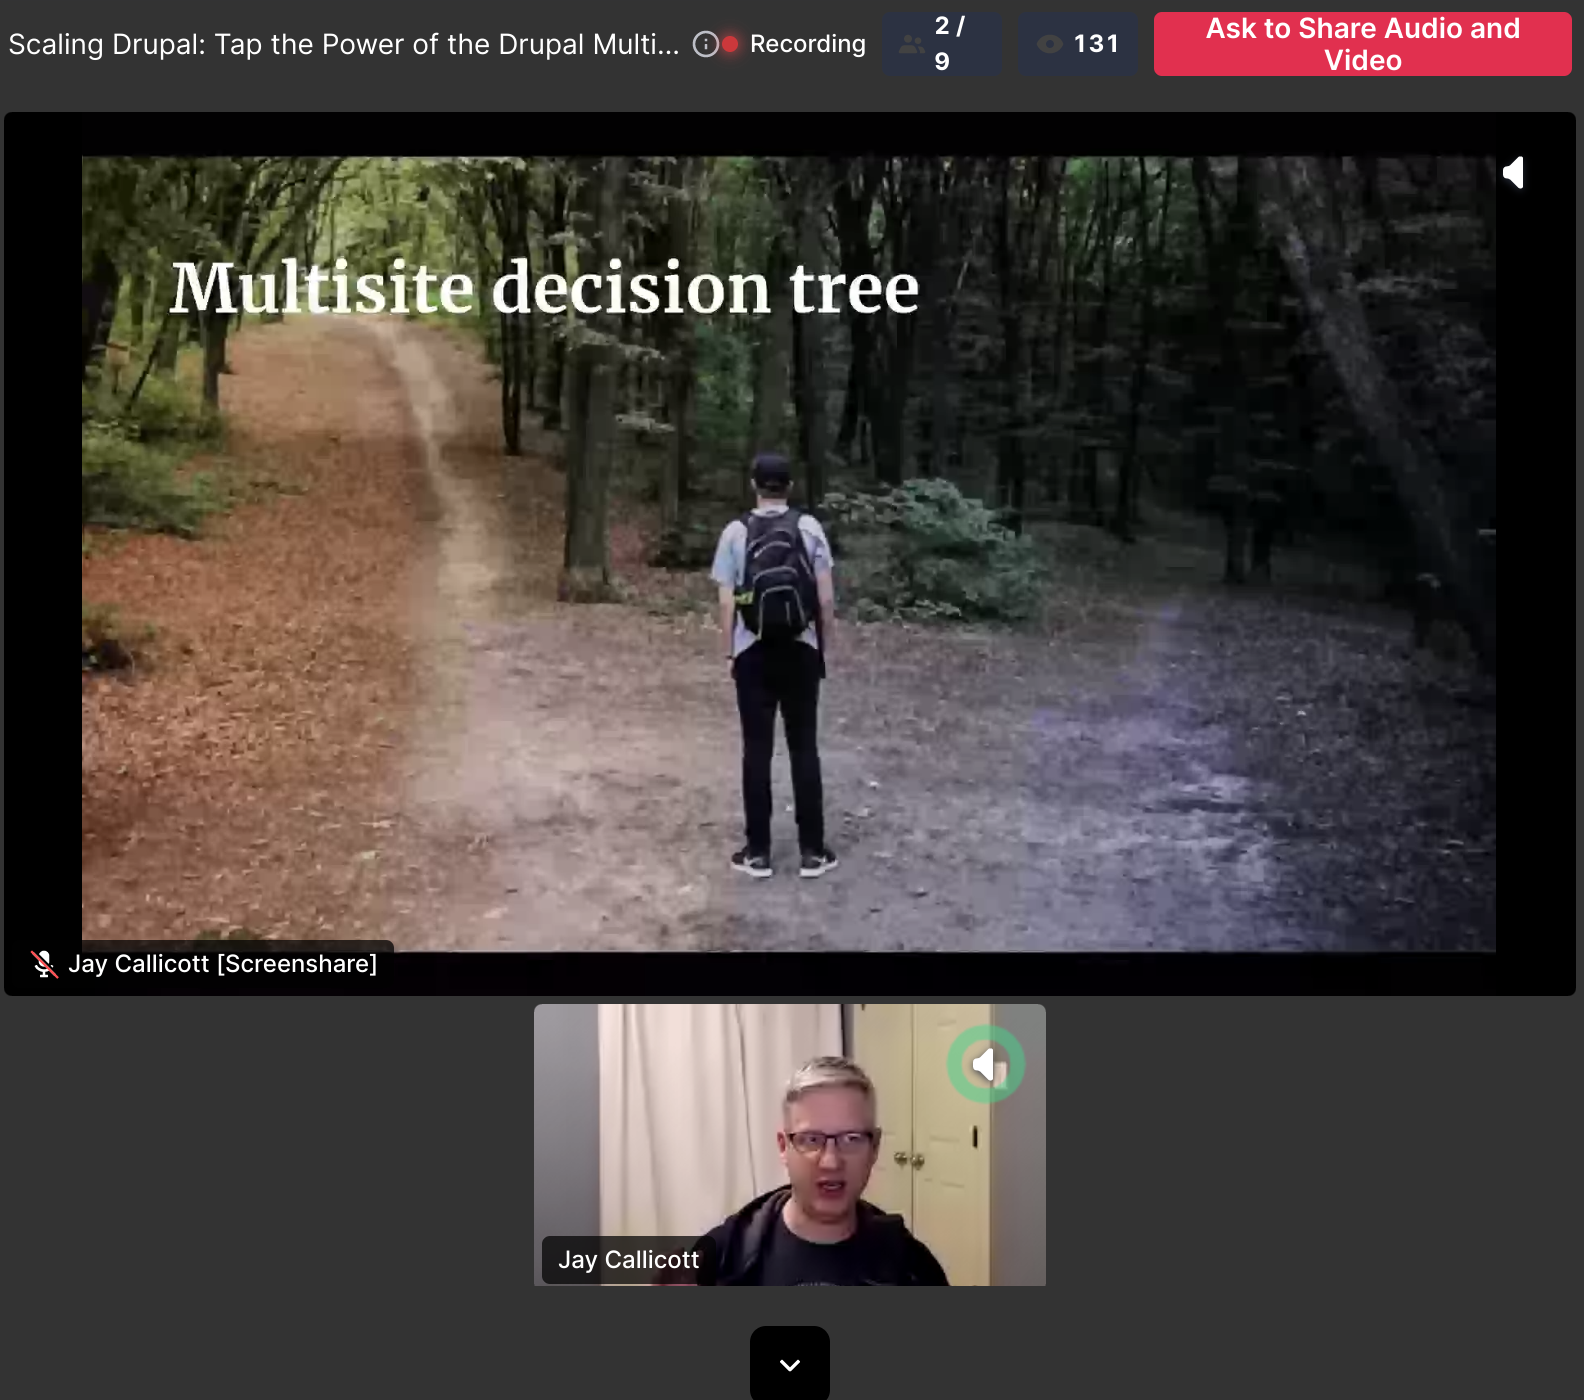 Drupal multisite presentation slide shows a decision tree